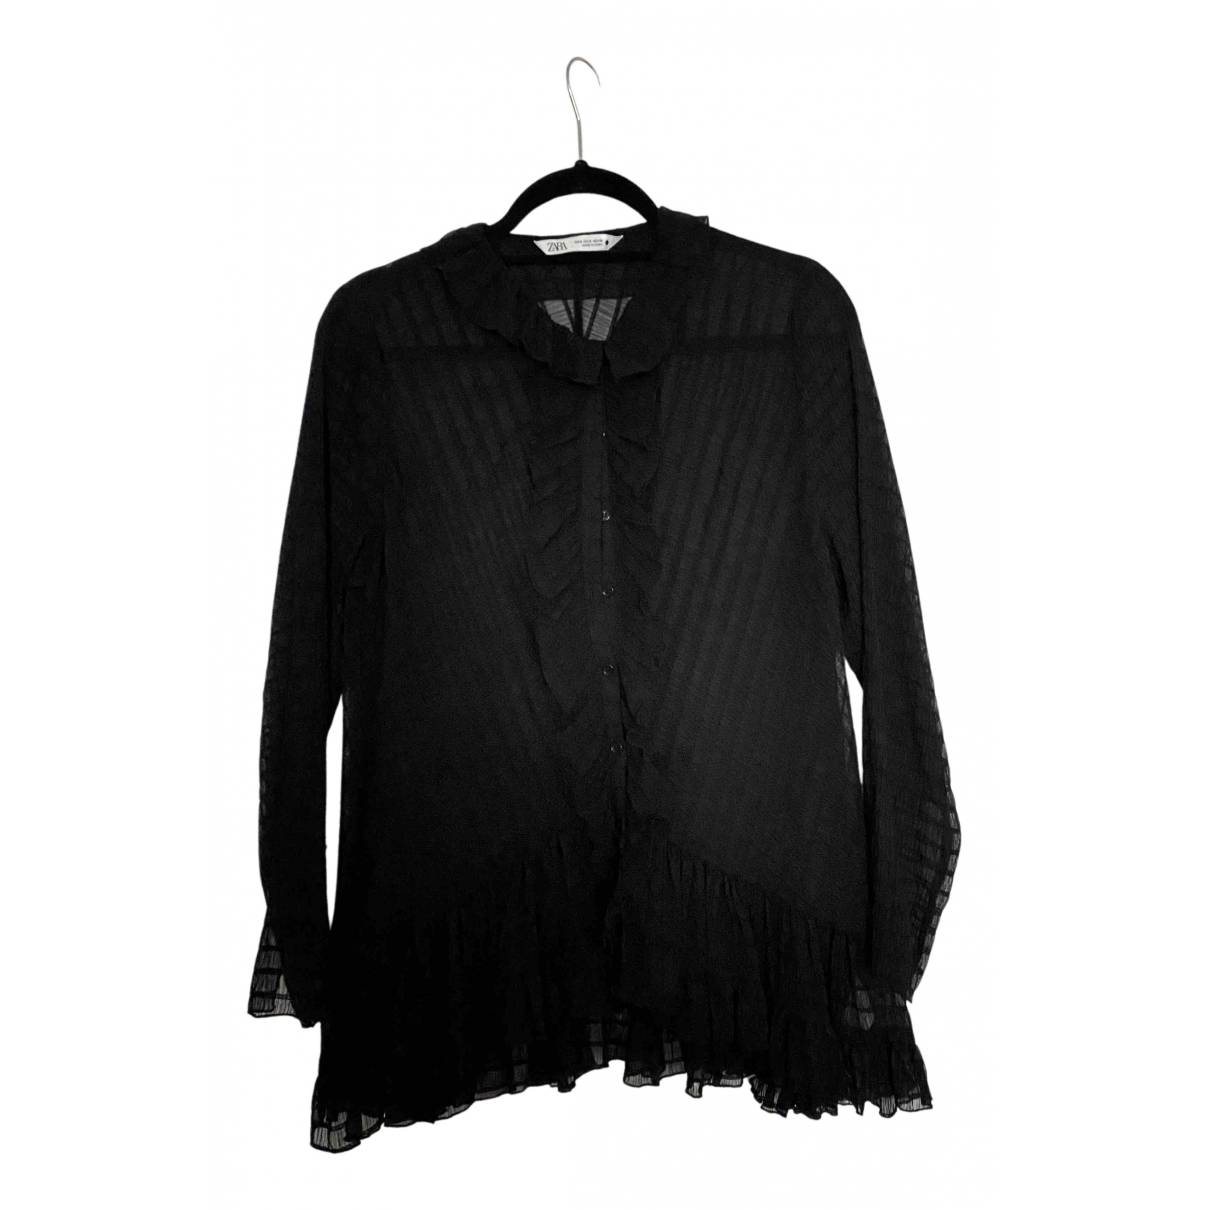 Zara N Black  top for Women S International